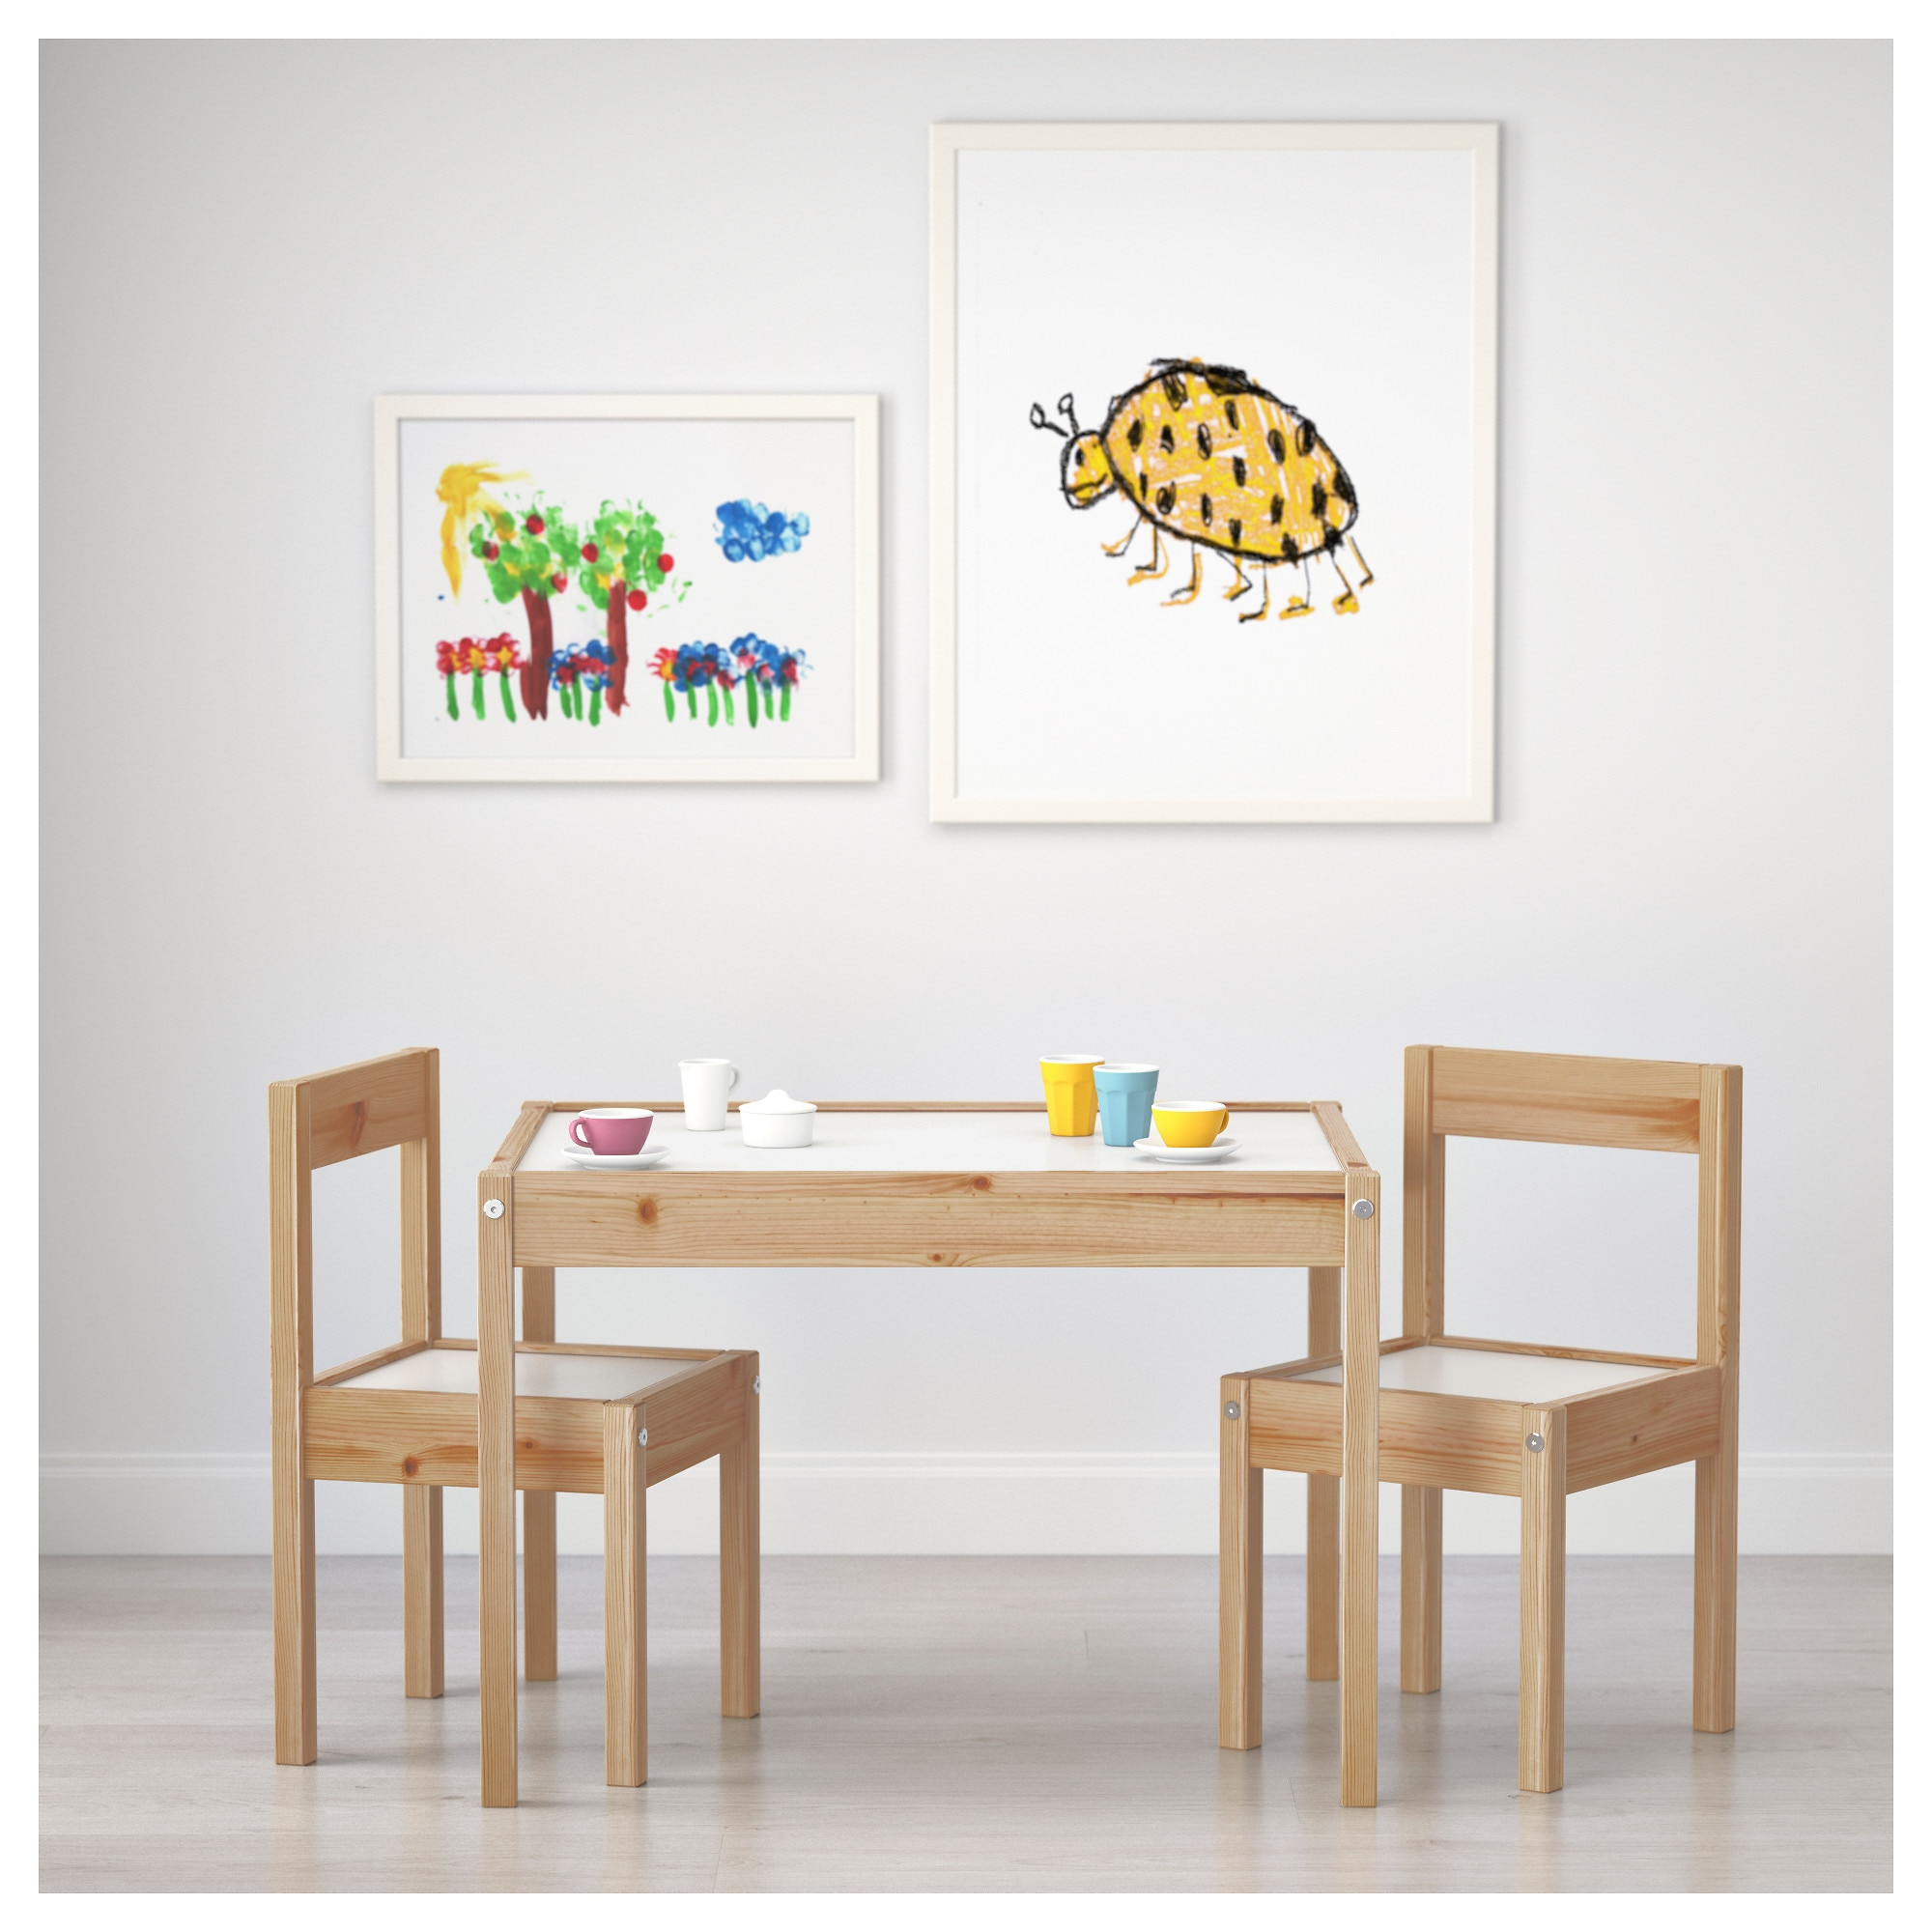 Child table and chairs ikea - Child Table And Chairs Ikea 19